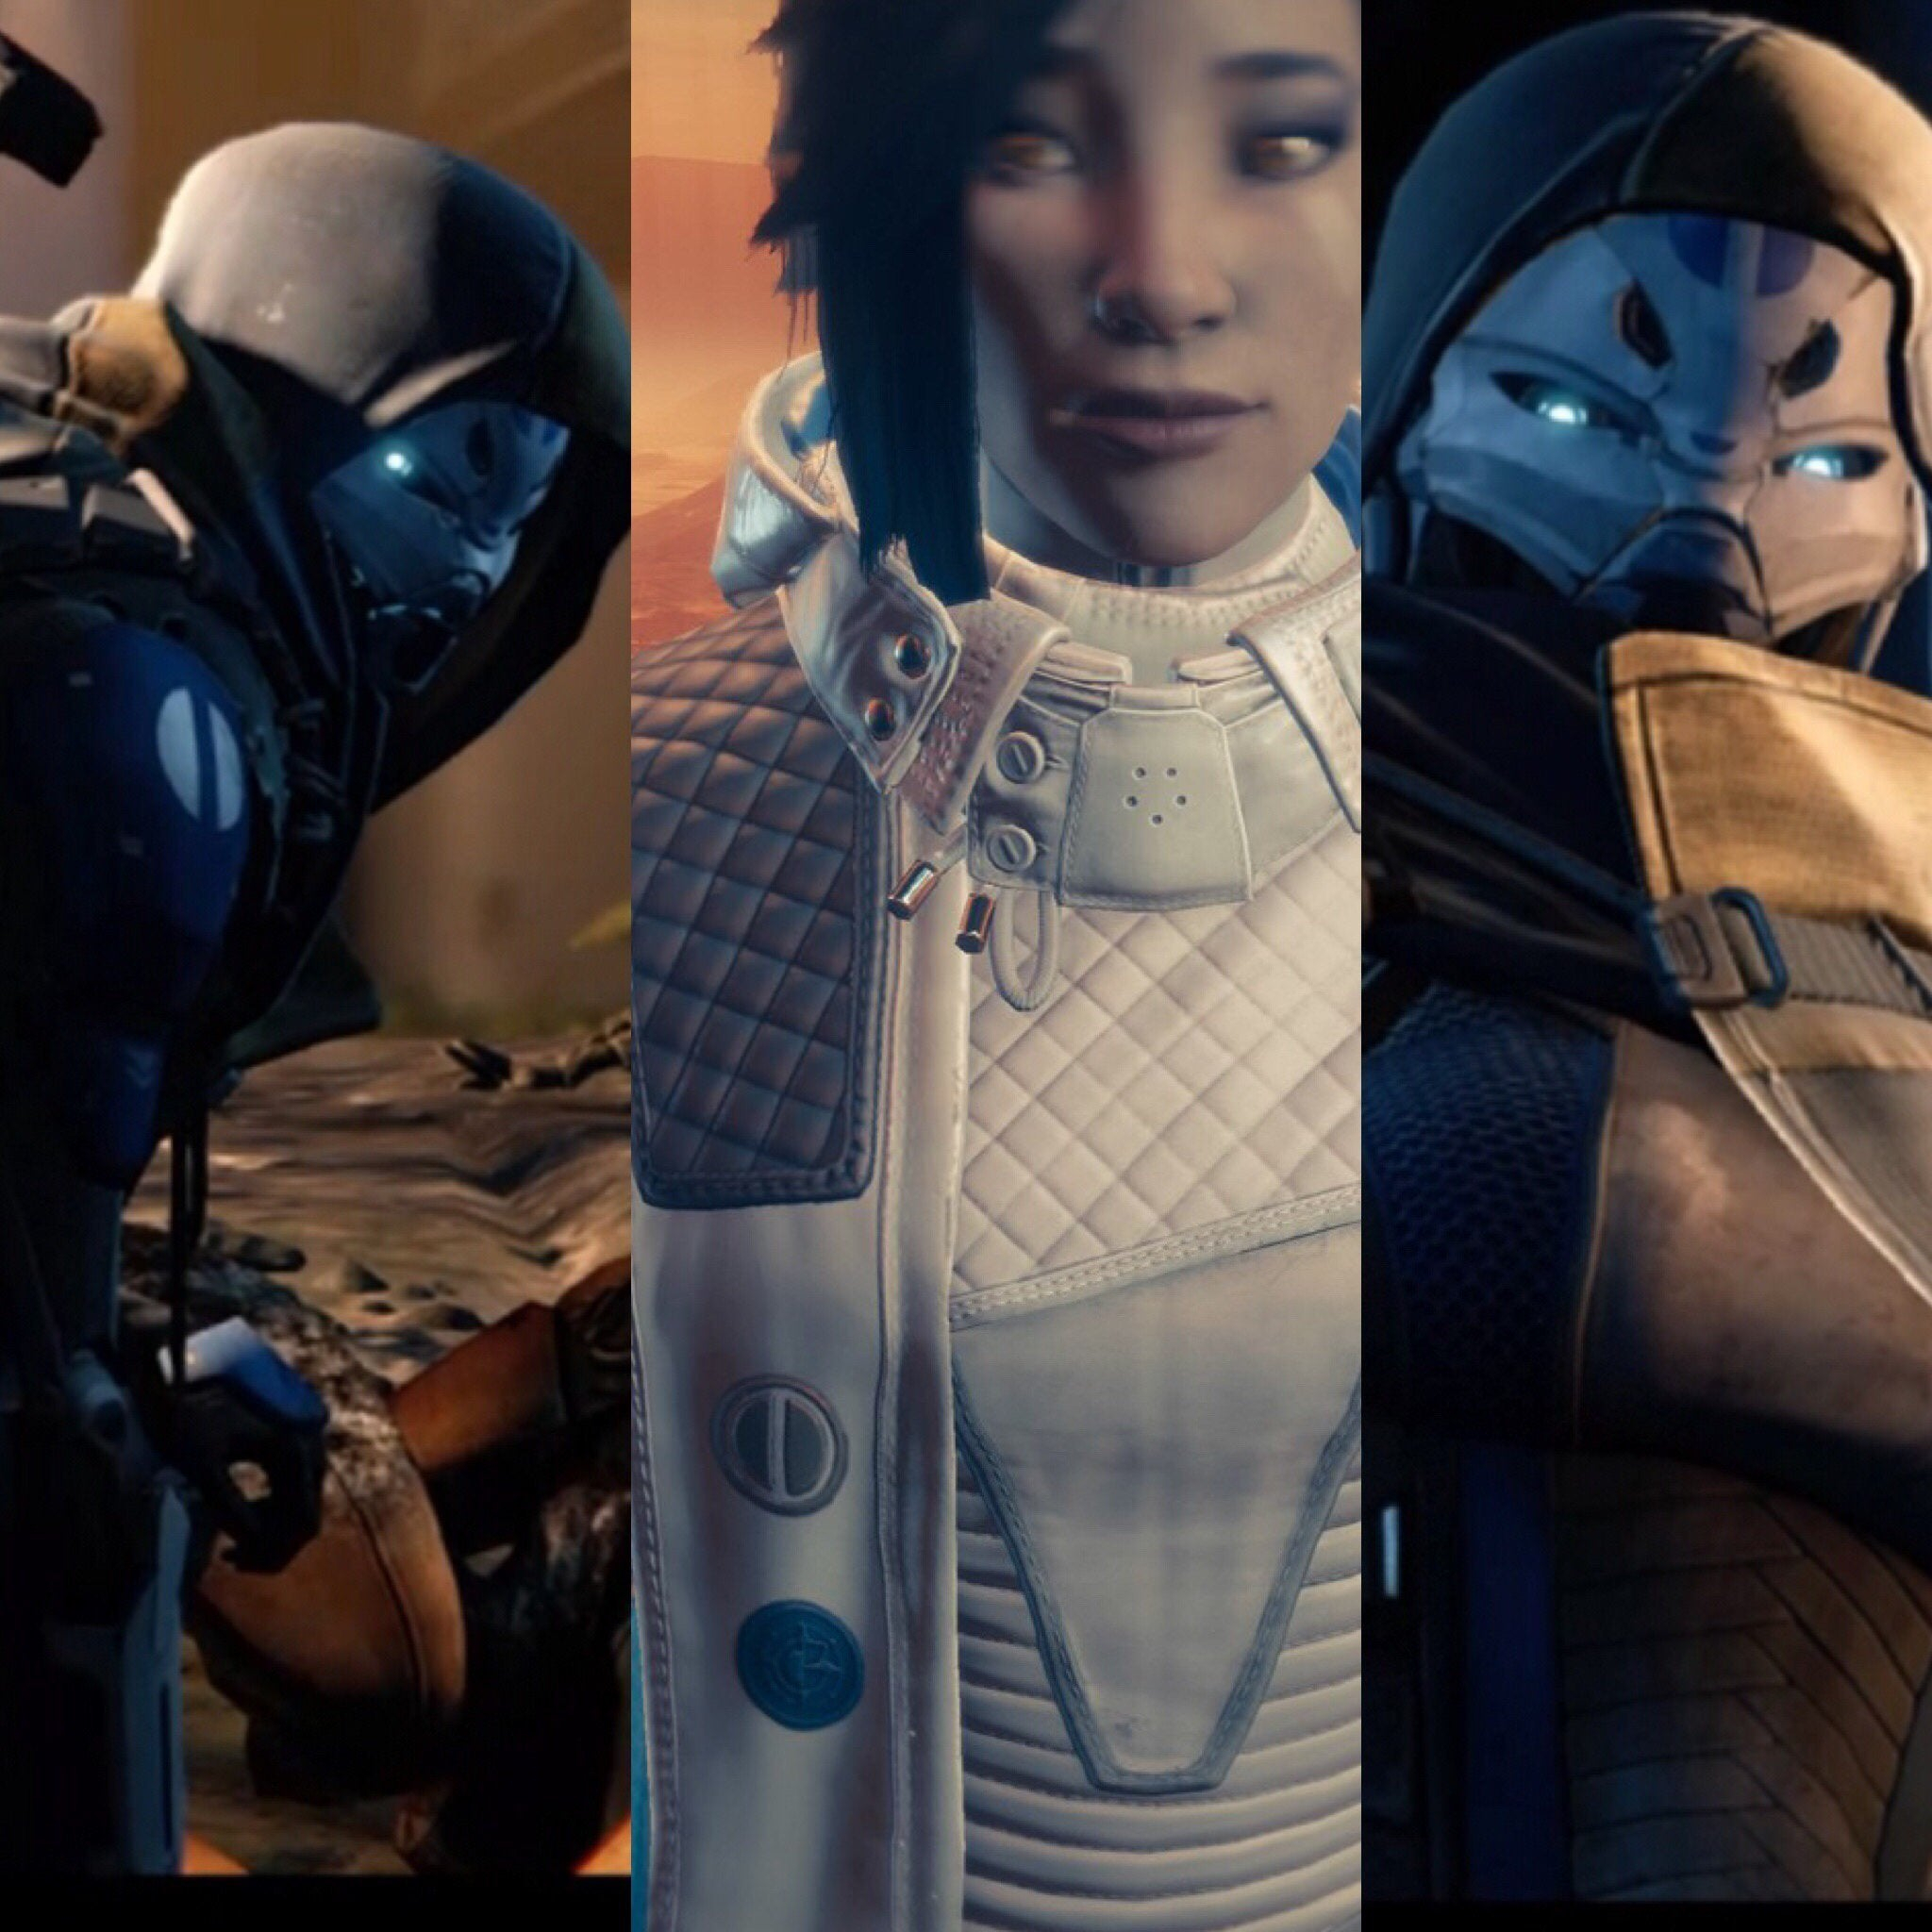 exo stranger and ana bray are wearing the same